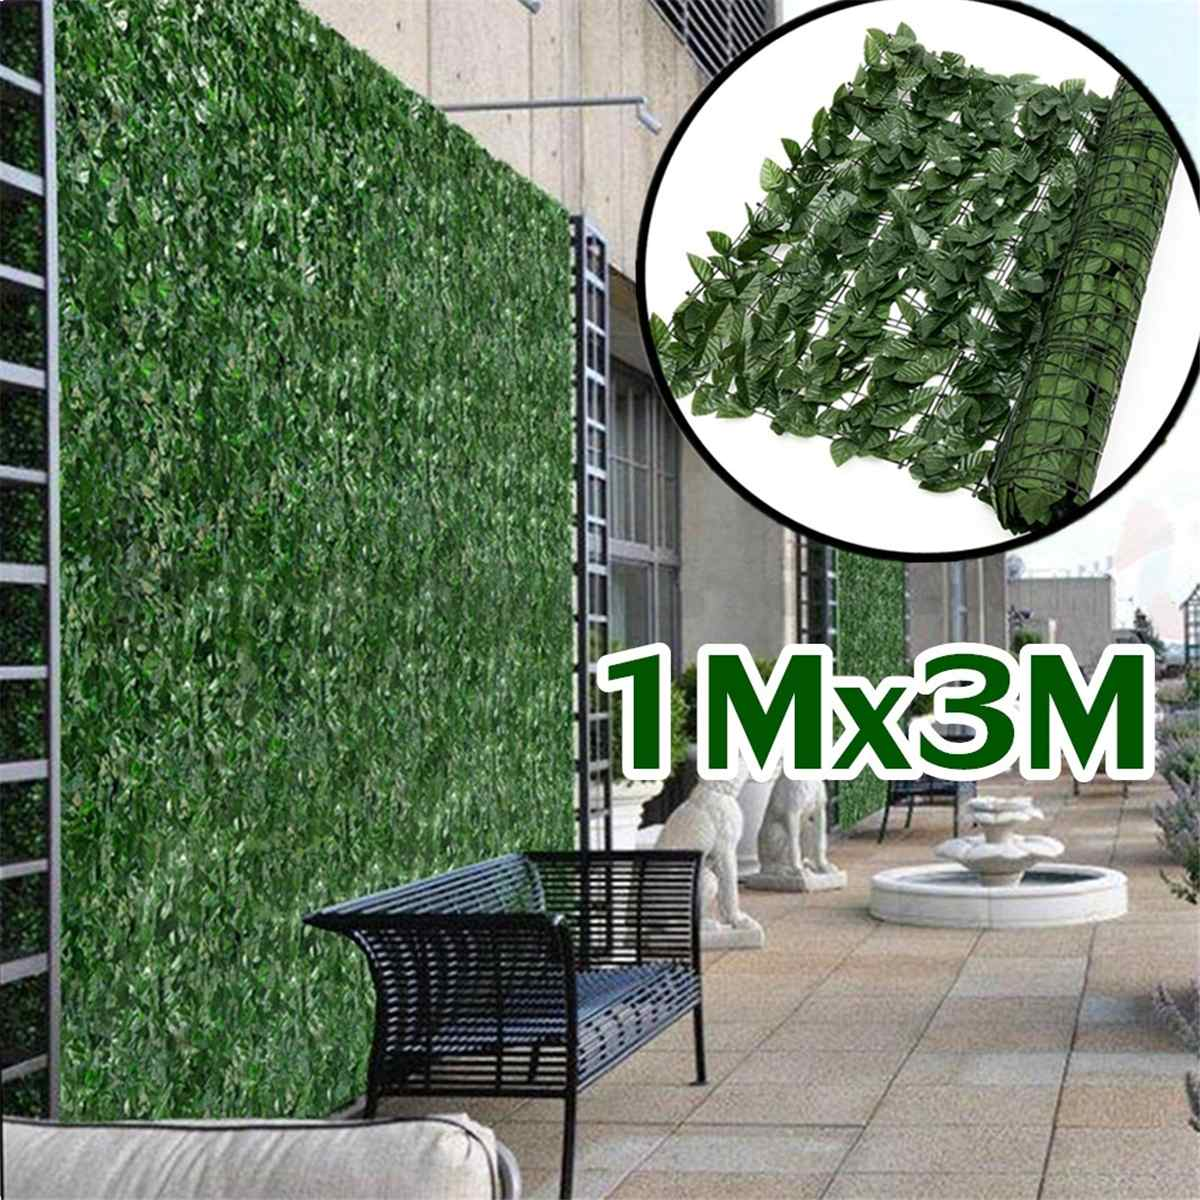 Us 28 96 40 Off Plant Wall Artificial Lawn Boxwood Hedge Garden Backyard Home Decor Simulation Grass Turf Rug Lawn Outdoor Flower Wall 1x3m In